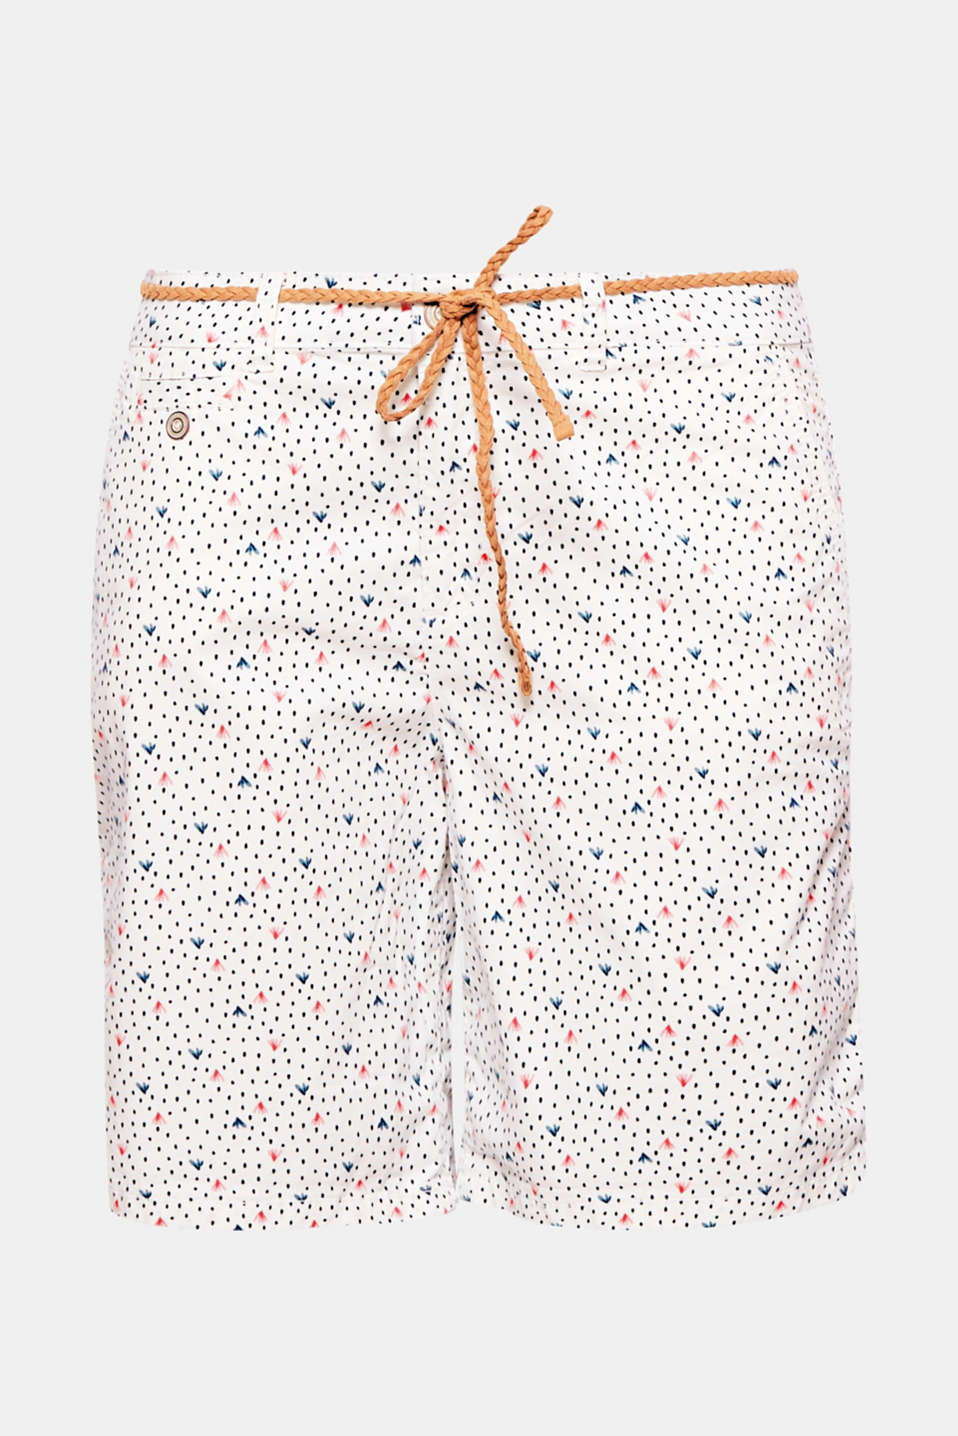 These soft shorts with a colourful all-over print and decorative, braided tie-around belt is beautifully summery!